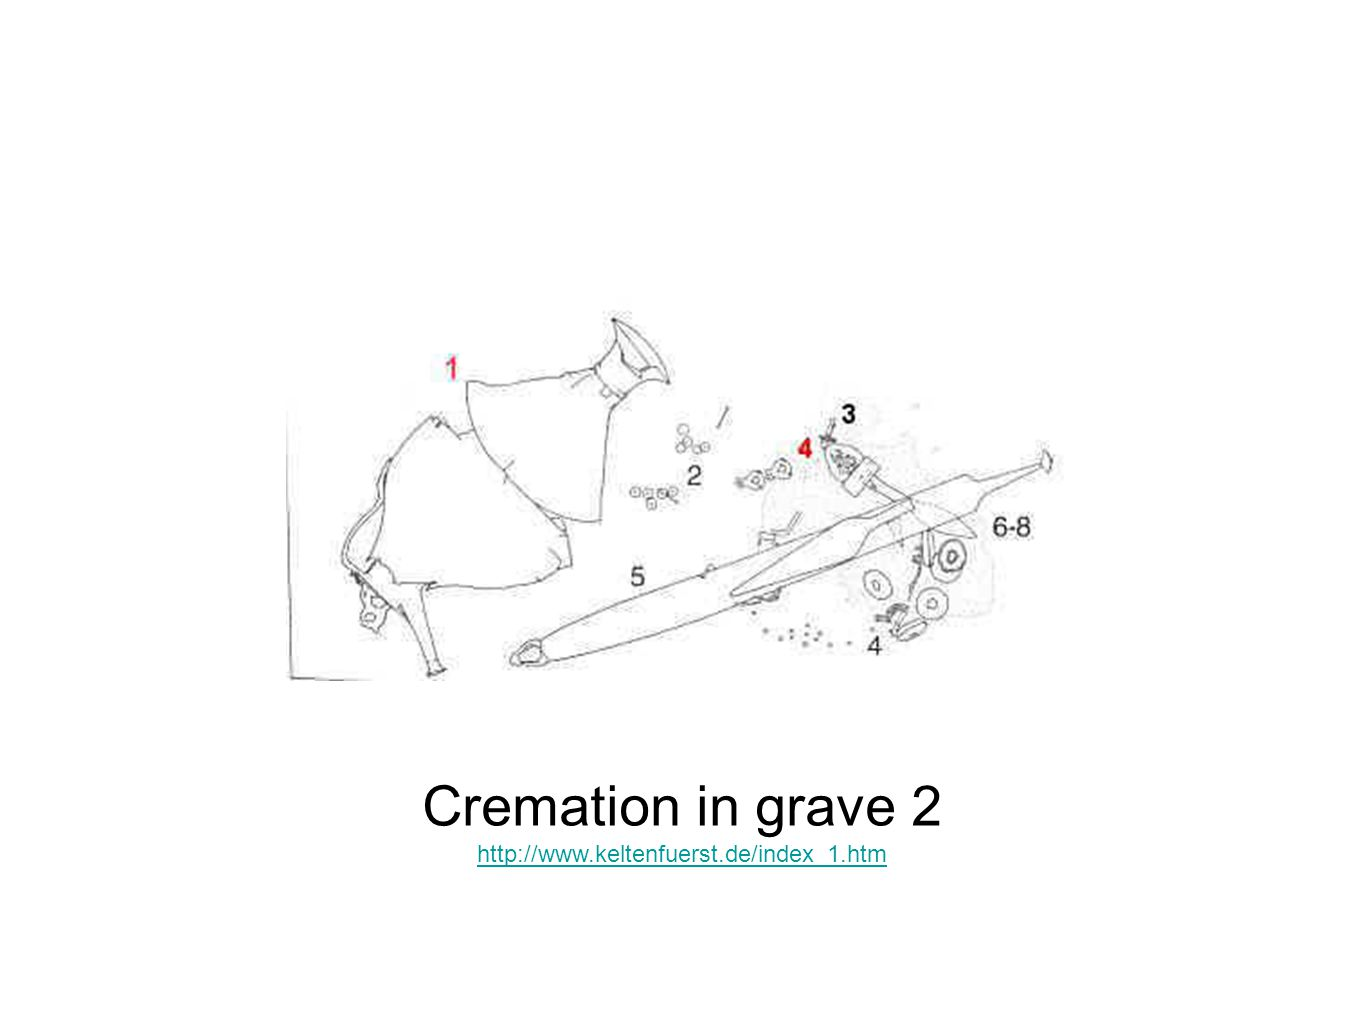 Cremation in grave 2 and those in the cremation burial in grave 2.